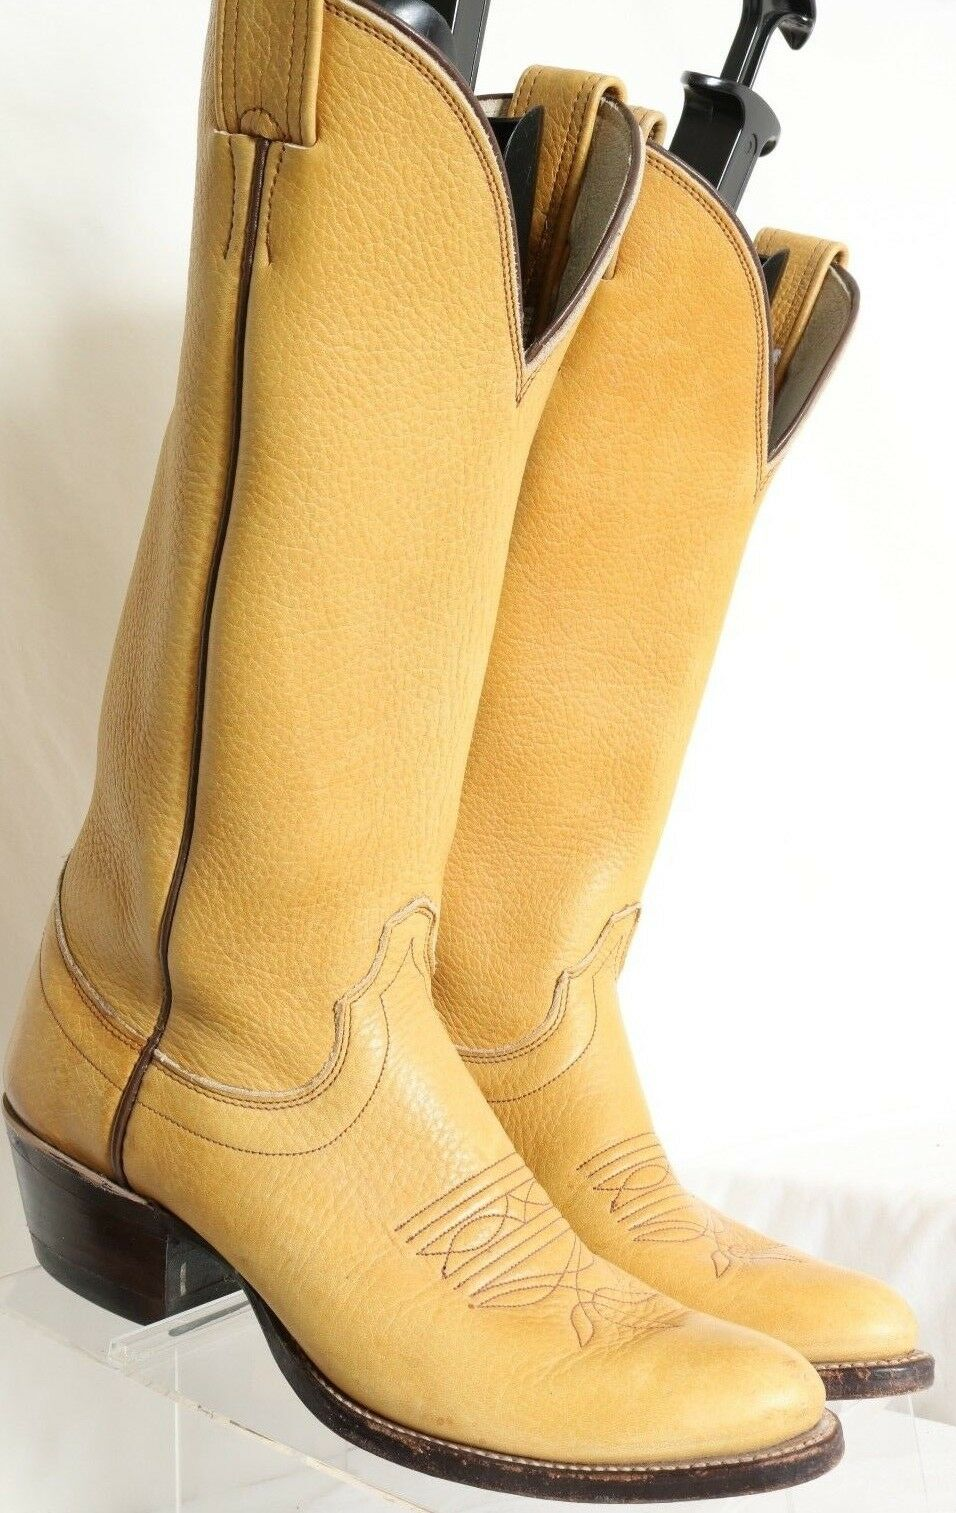 Olathe Vintage Tall Polo Yellow Tan Western Cowboy Boots 101230 Men's US 7.5 B